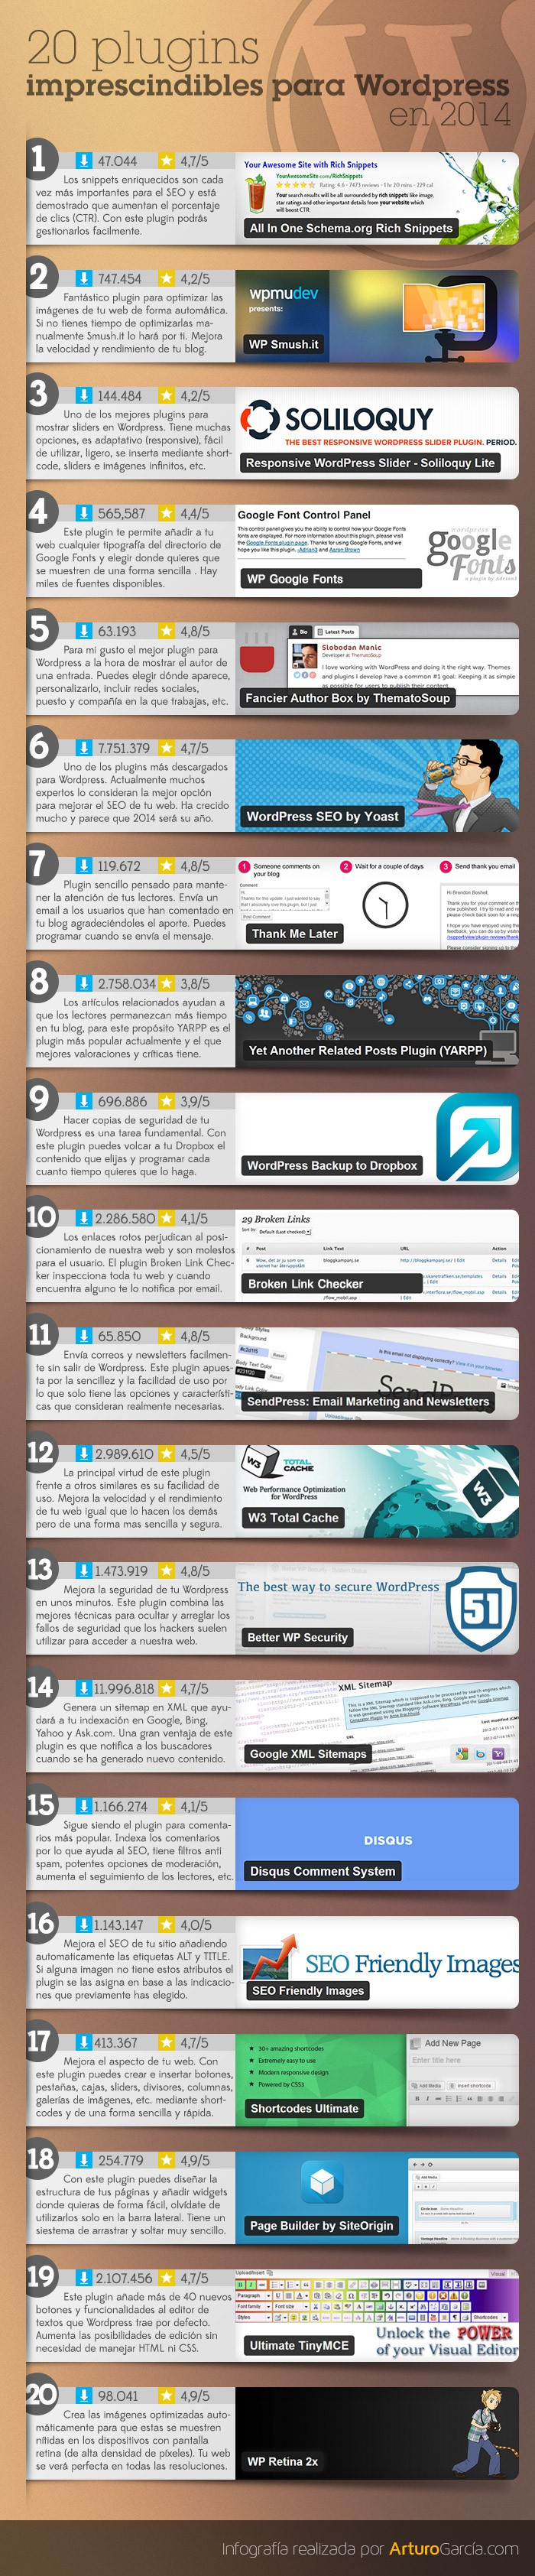 20-plugins-imprescindibles-wordpress-2014